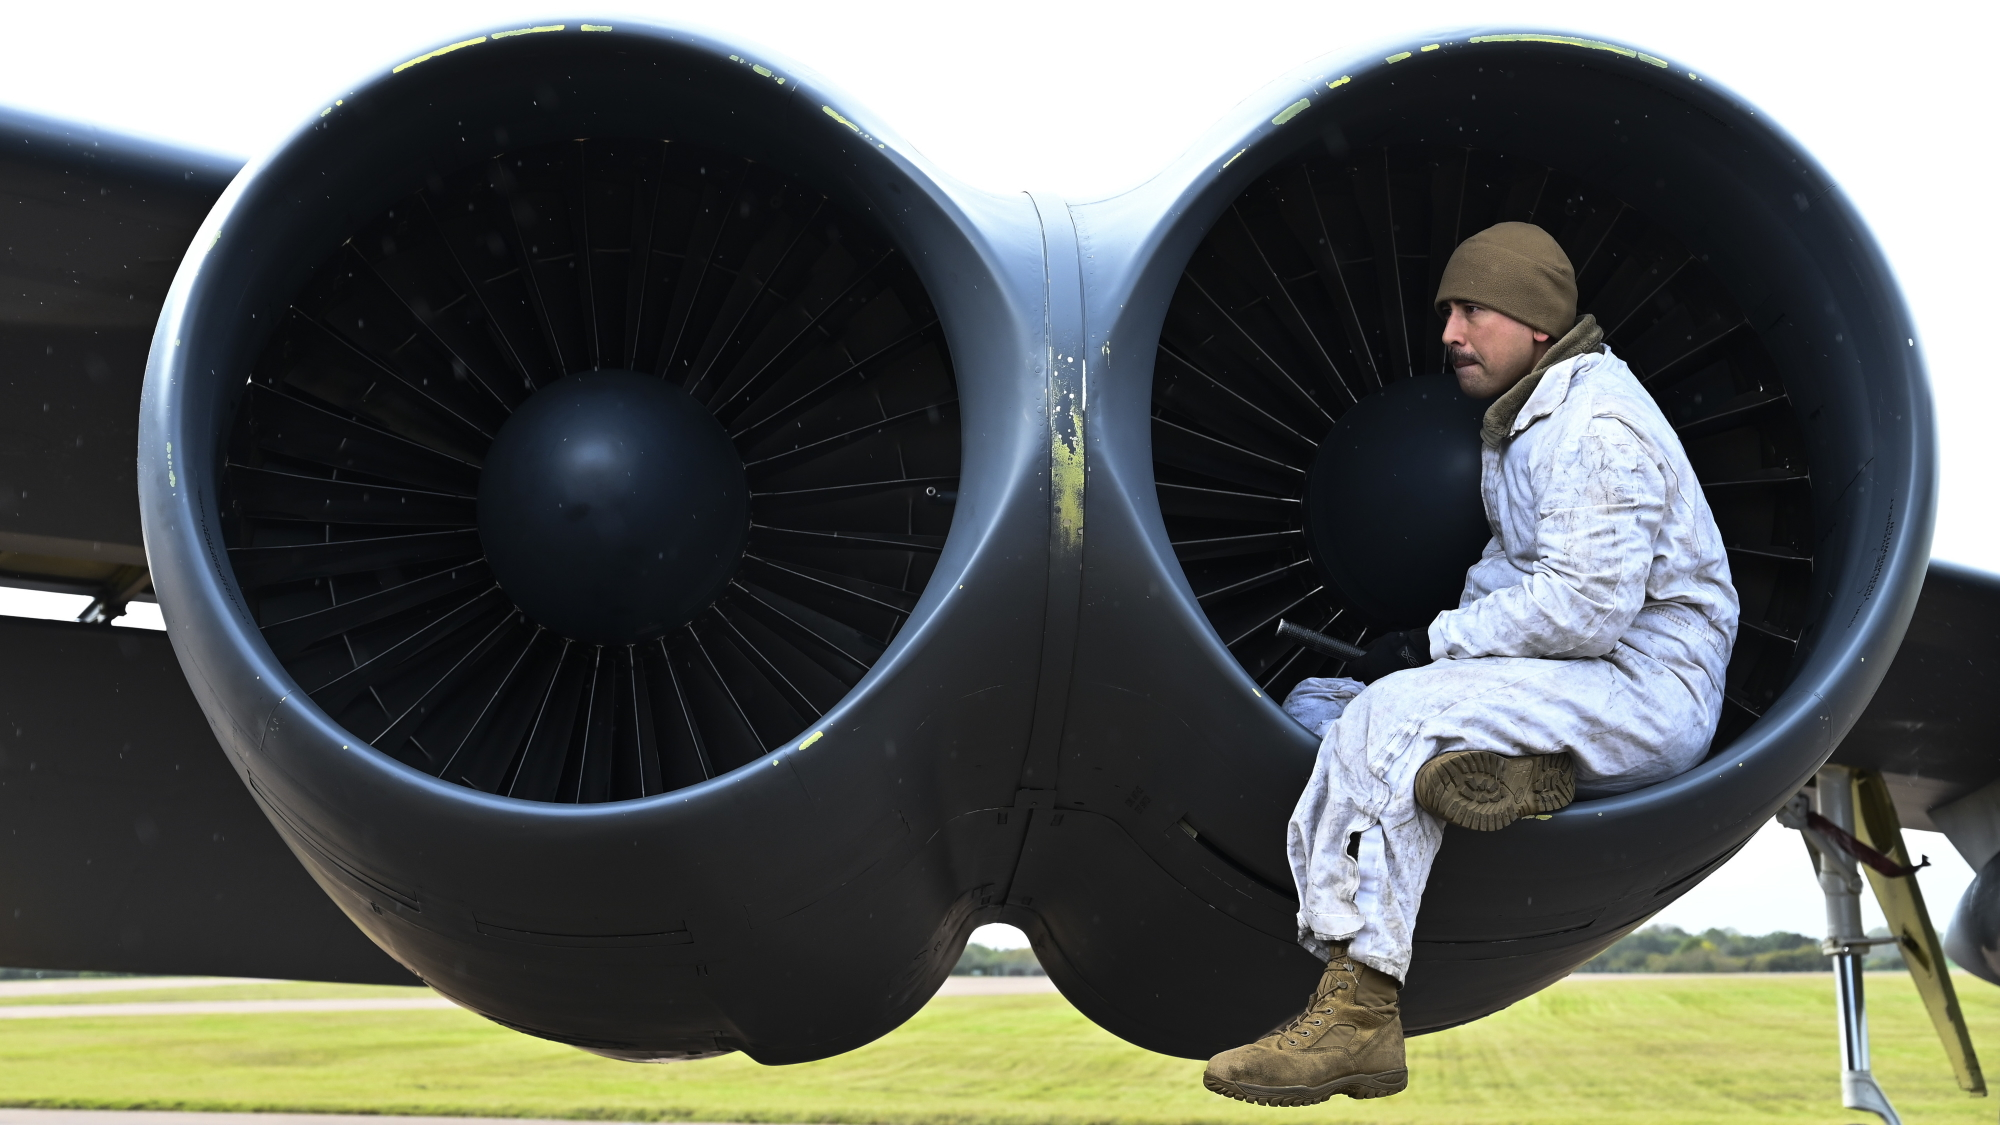 Staff Sgt. Stephen Zbinovec, 2nd Aircraft Maintenance Squadron, 96th Aircraft Maintenance Unit crew chief, inspects the engine of a U.S. Air Force B-52H Stratofortress at RAF Fairford, United Kingdom, Oct. 18, 2019. (Senior Airman Stuart Bright/Air Force)